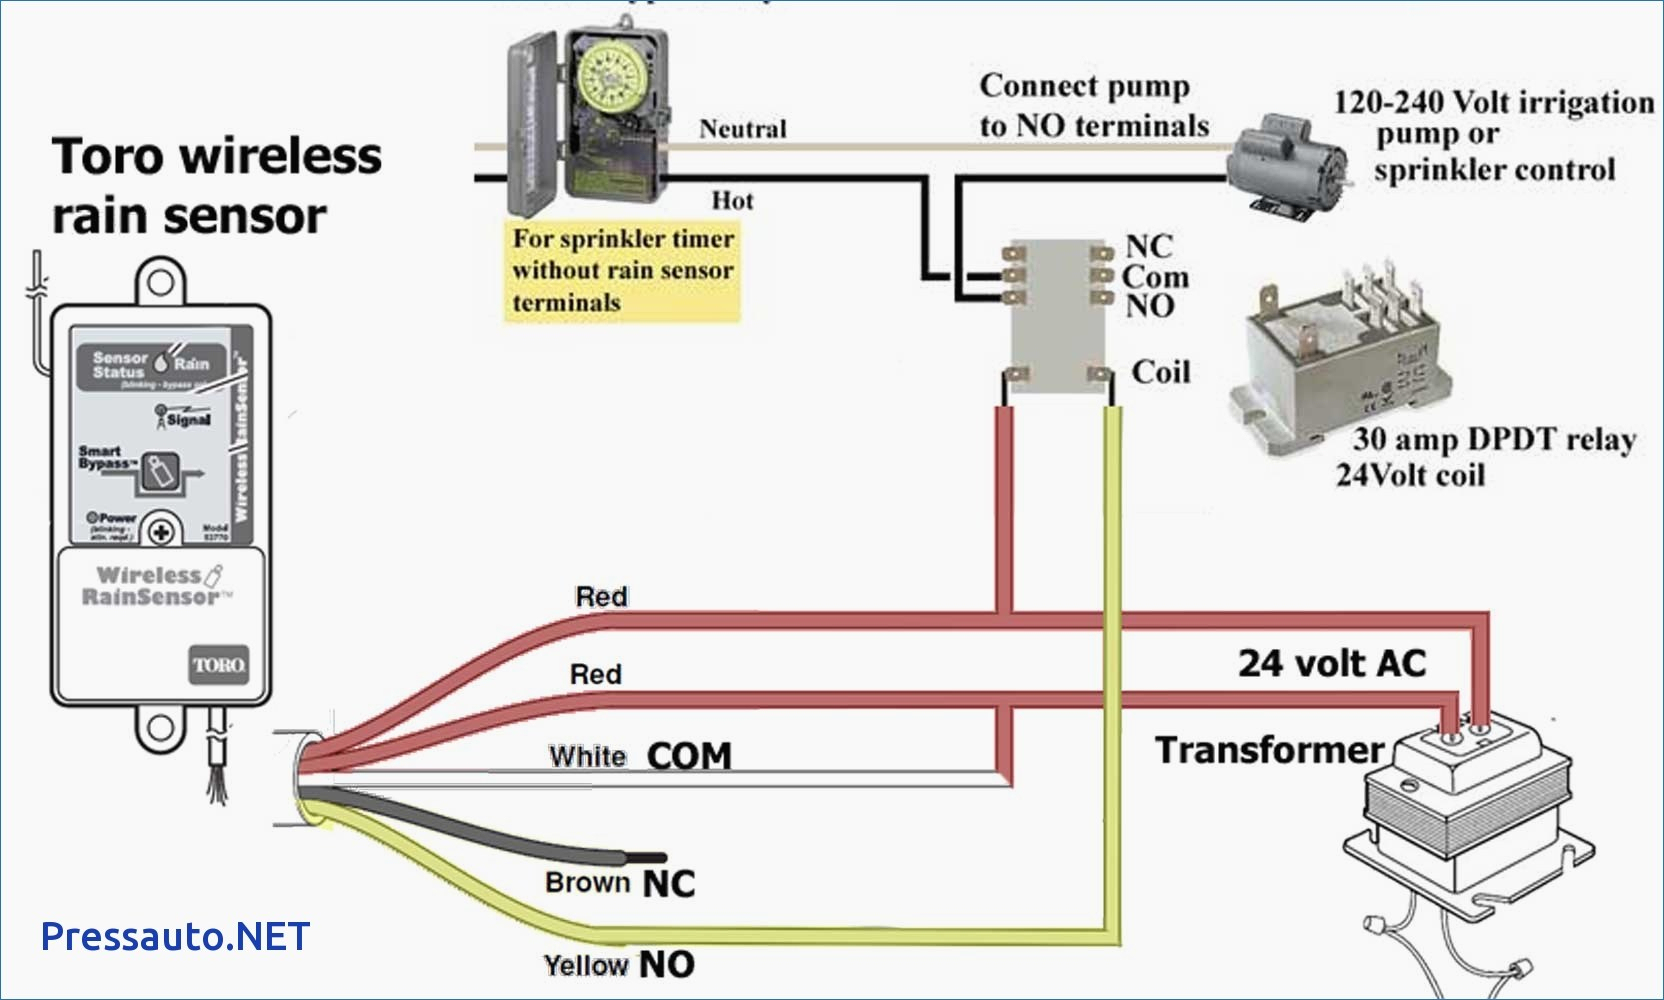 120 240V Transformer Wiring Diagram Diagrams | Wiring Diagram - 480V To 240V Transformer Wiring Diagram